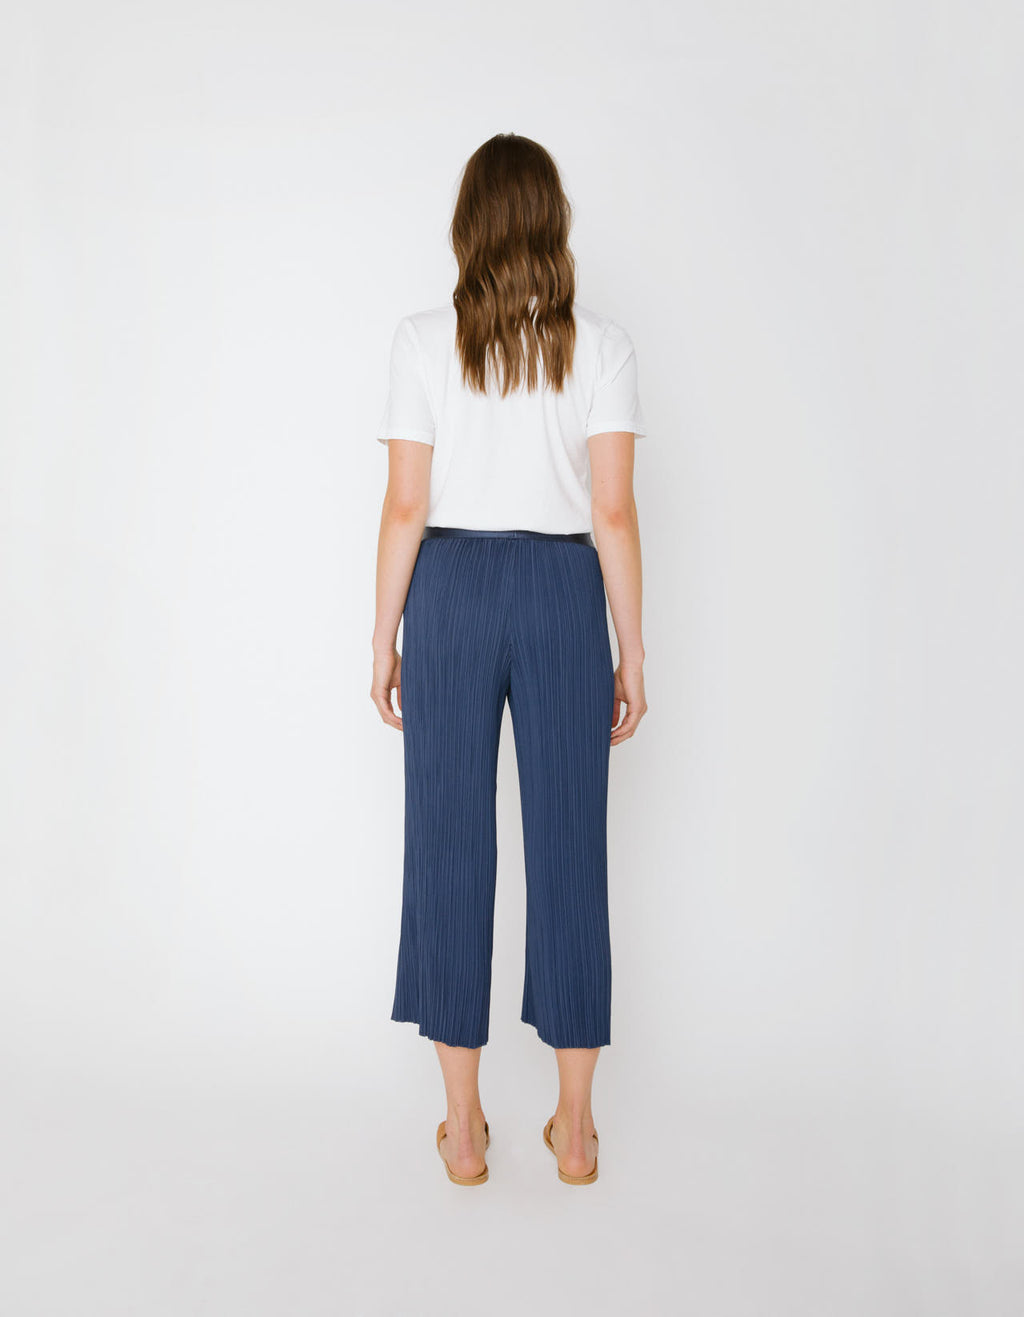 The Evelyn Pant in Navy